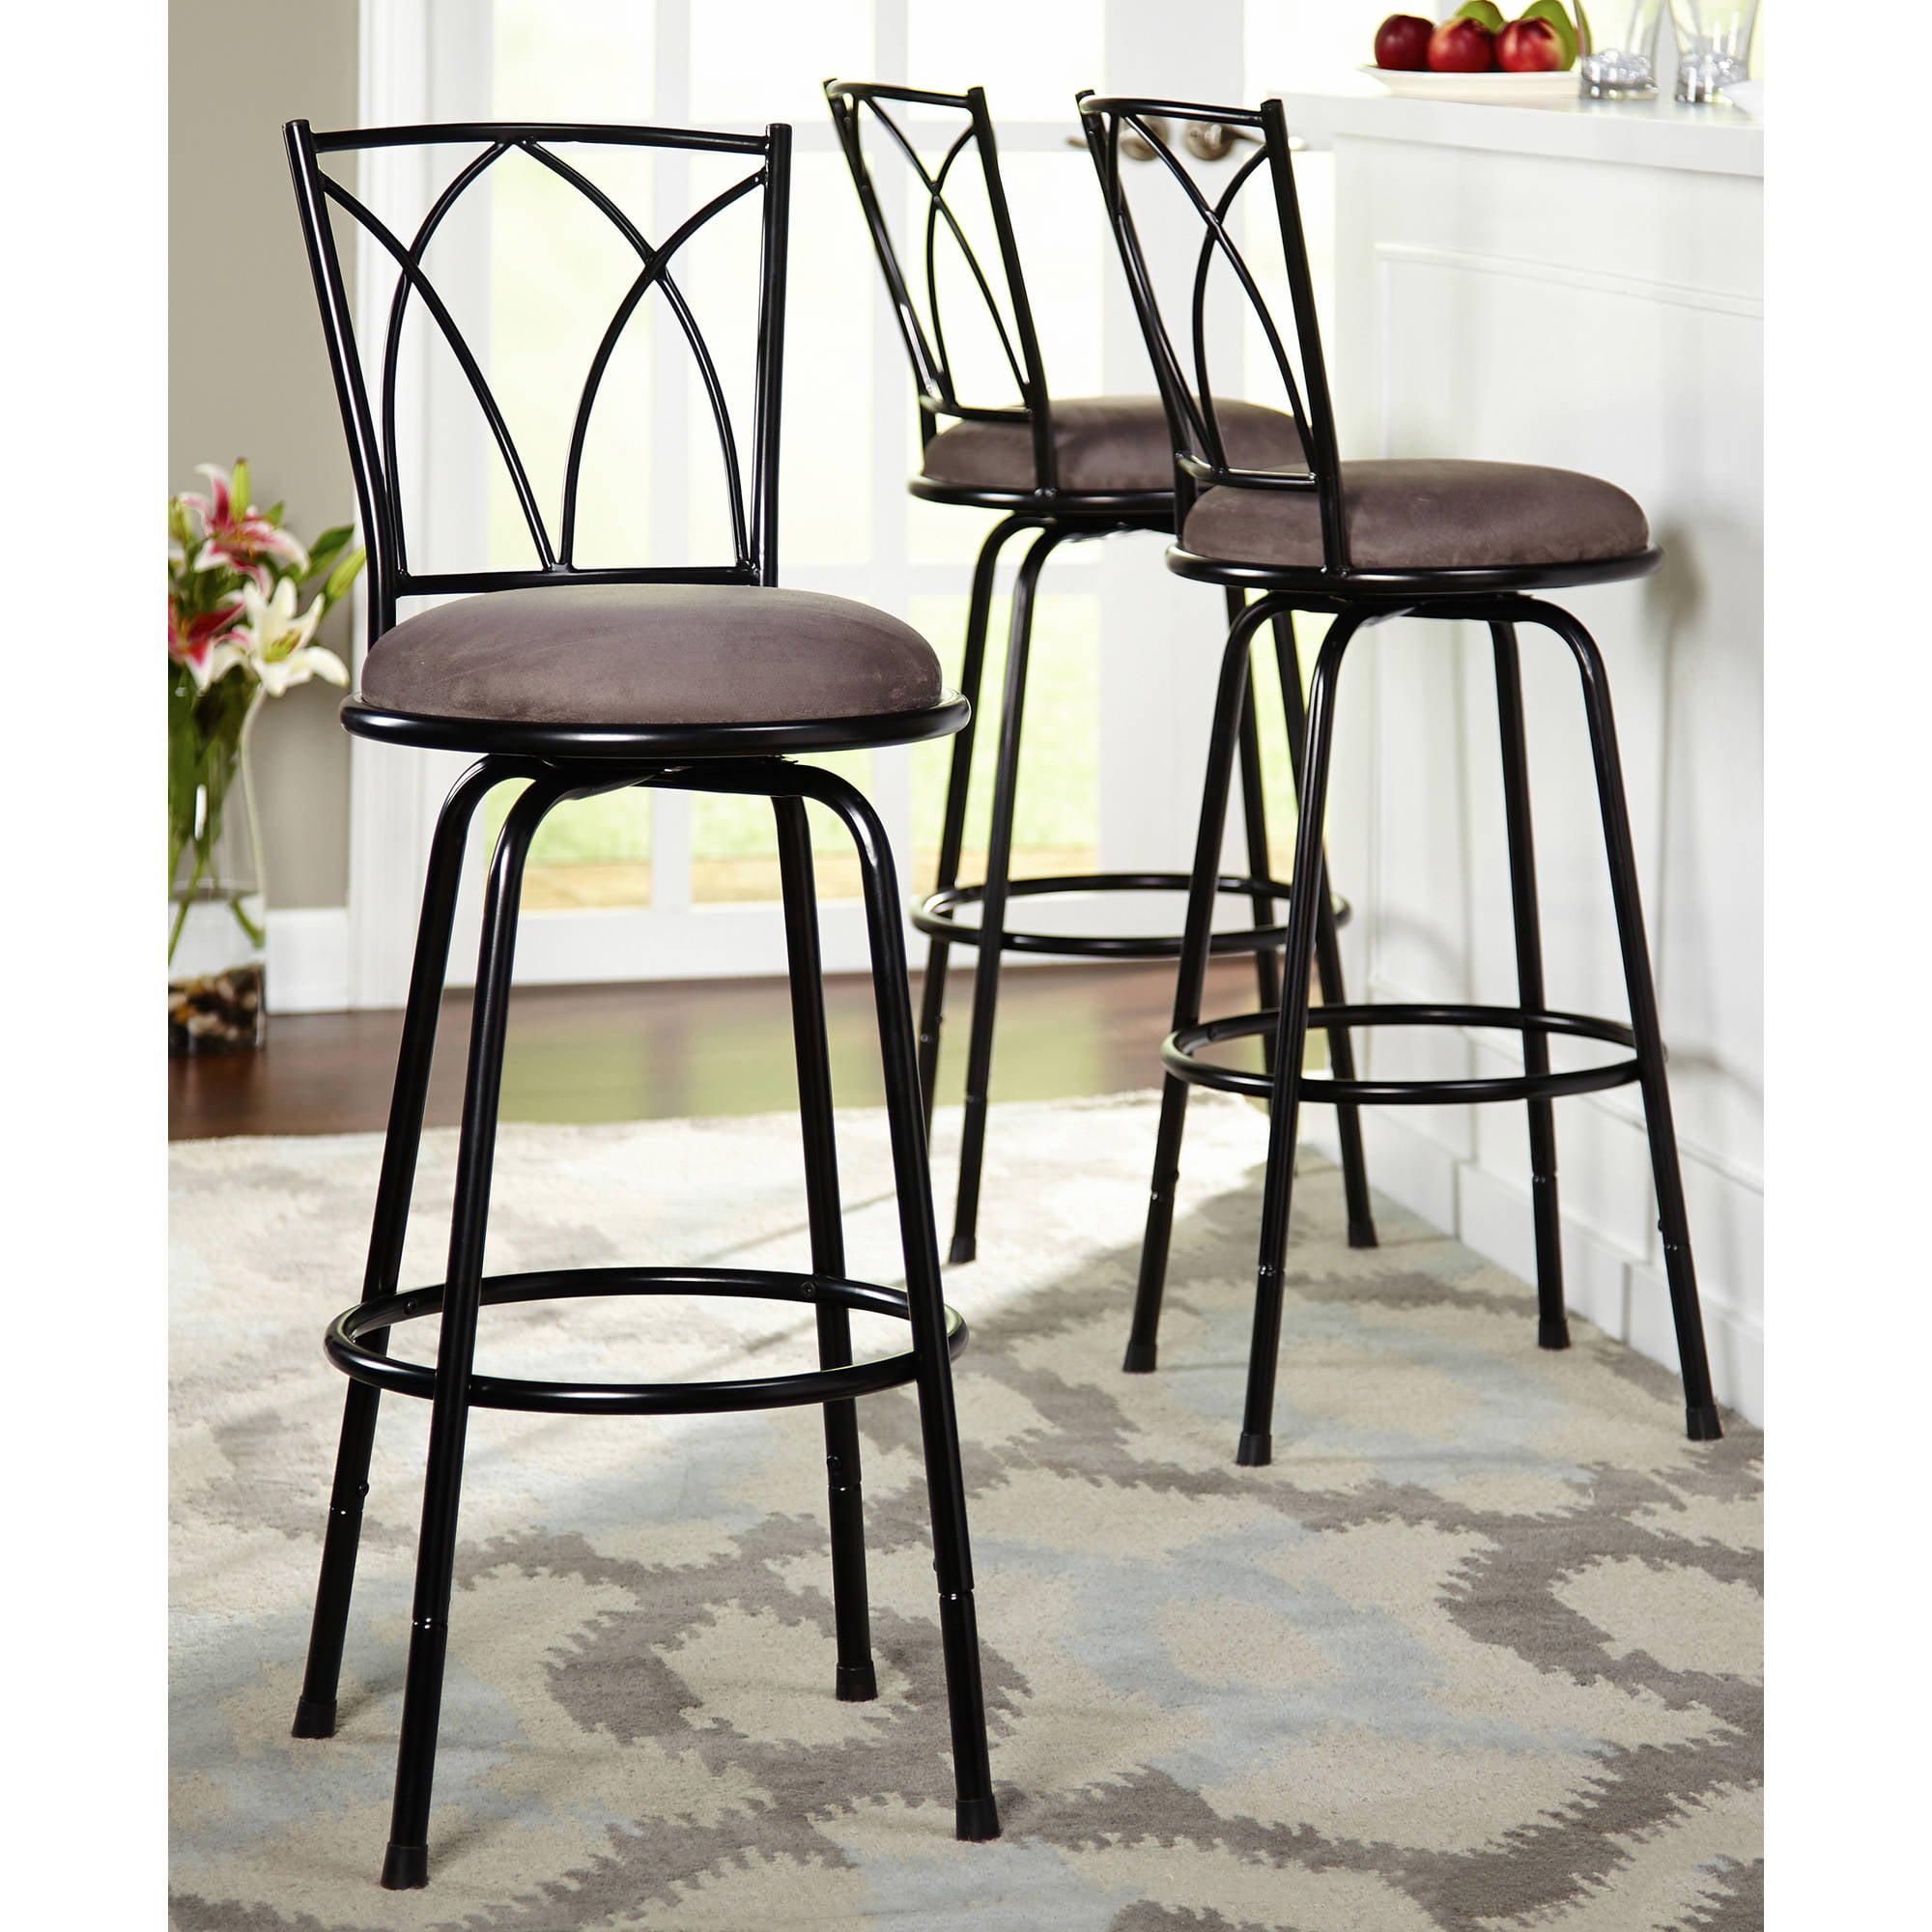 Tms Delta Adjustable Height Metal Barstools Black Set Of 3 Walmart Com